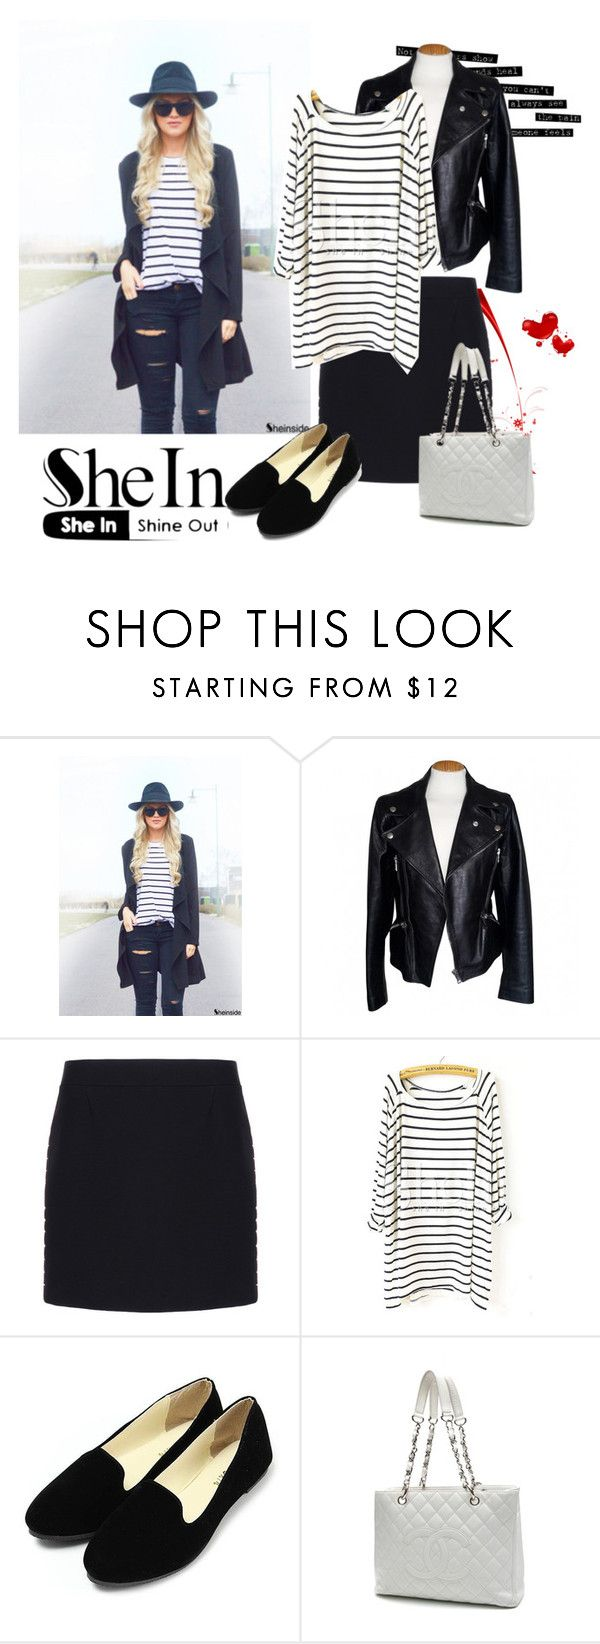 """T - shirt"" by woman-1979 ❤ liked on Polyvore featuring Alexander McQueen, Balenciaga, Blanc Noir and Chanel"